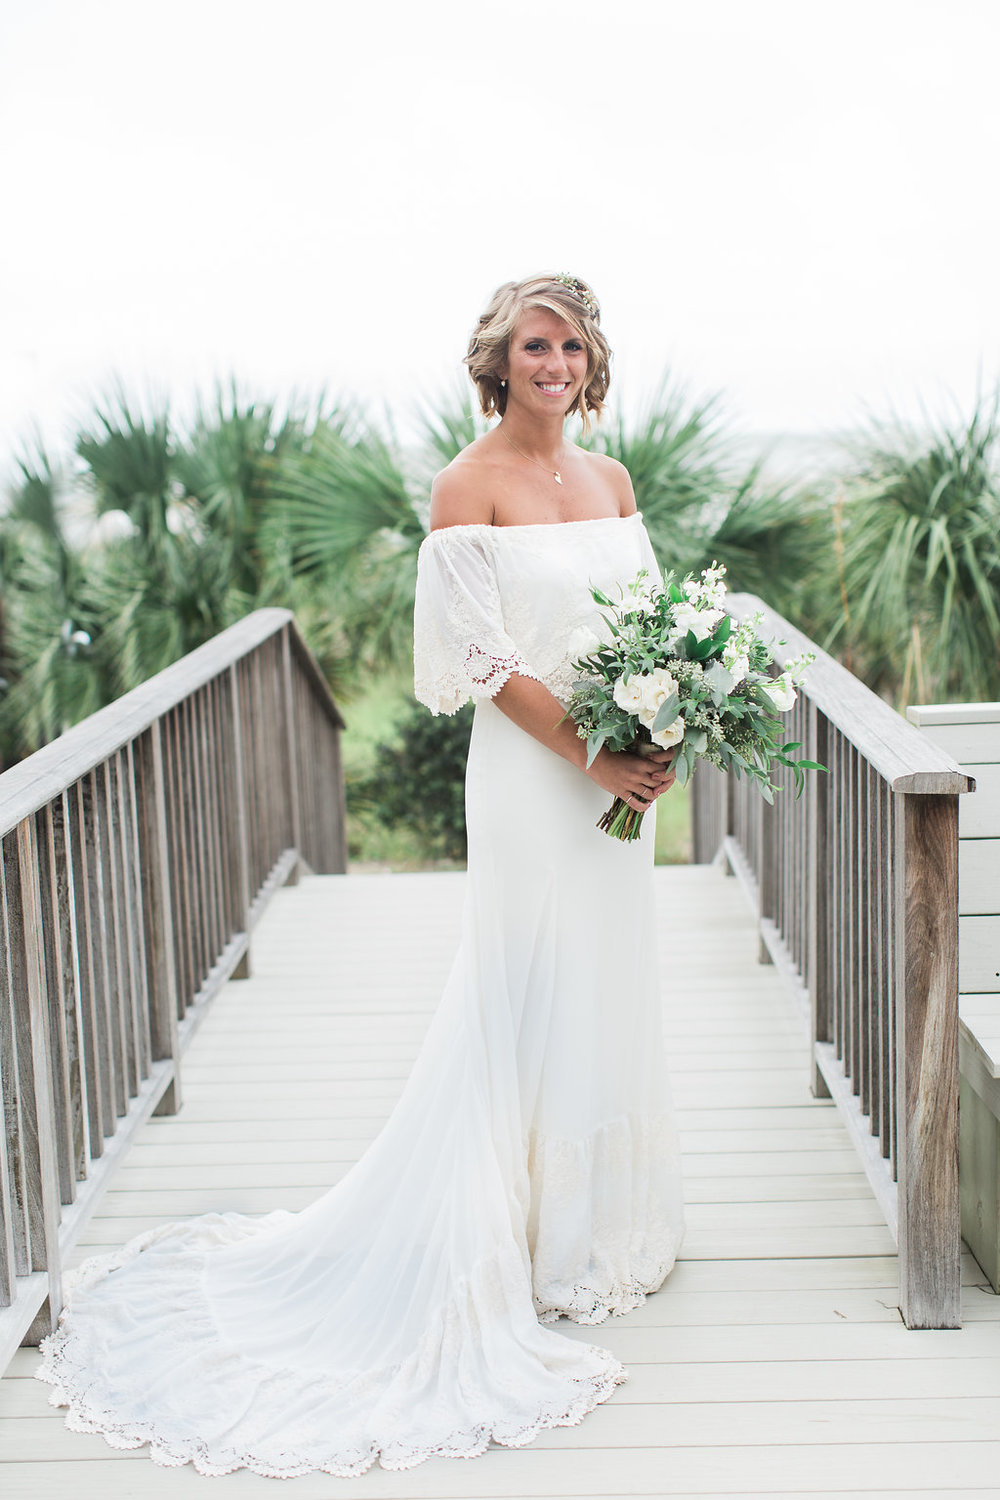 stacey-and-tj-wedding-apartment-b-photography-ivory-and-beau-bridal-boutique-savannah-wedding-dresses-daughters-of-simone-lu-boho-bride-boho-wedding-savannah-boho-wedding-savannah-weddings-savannah-bridal-gowns-savannah-wedding-19.jpg